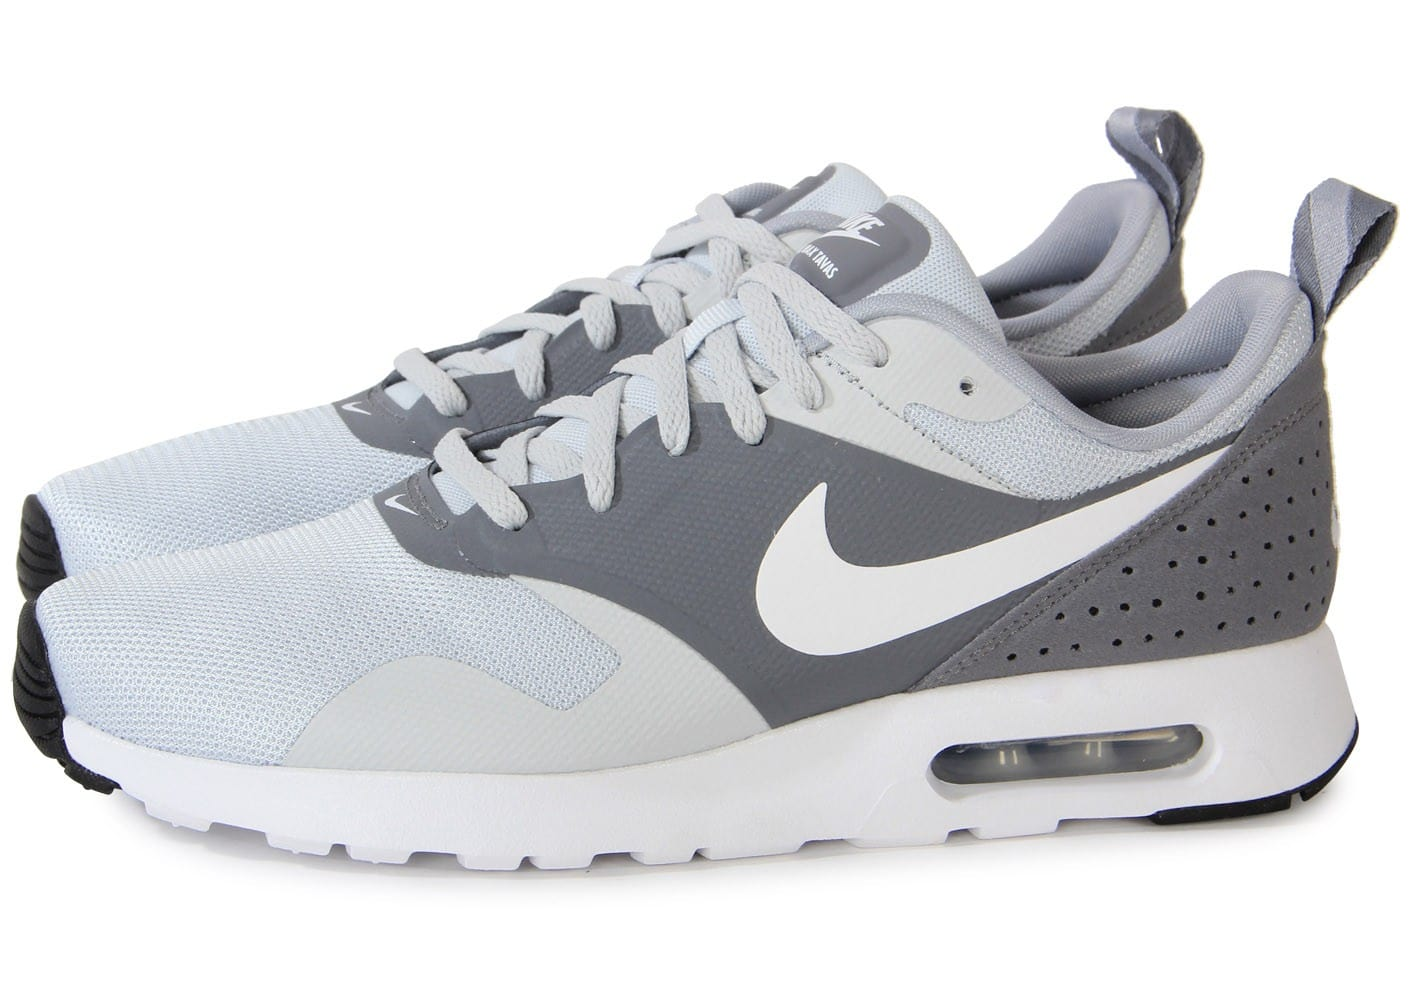 Nike Air Max Tavas Blanche Grise Chaussures Baskets homme